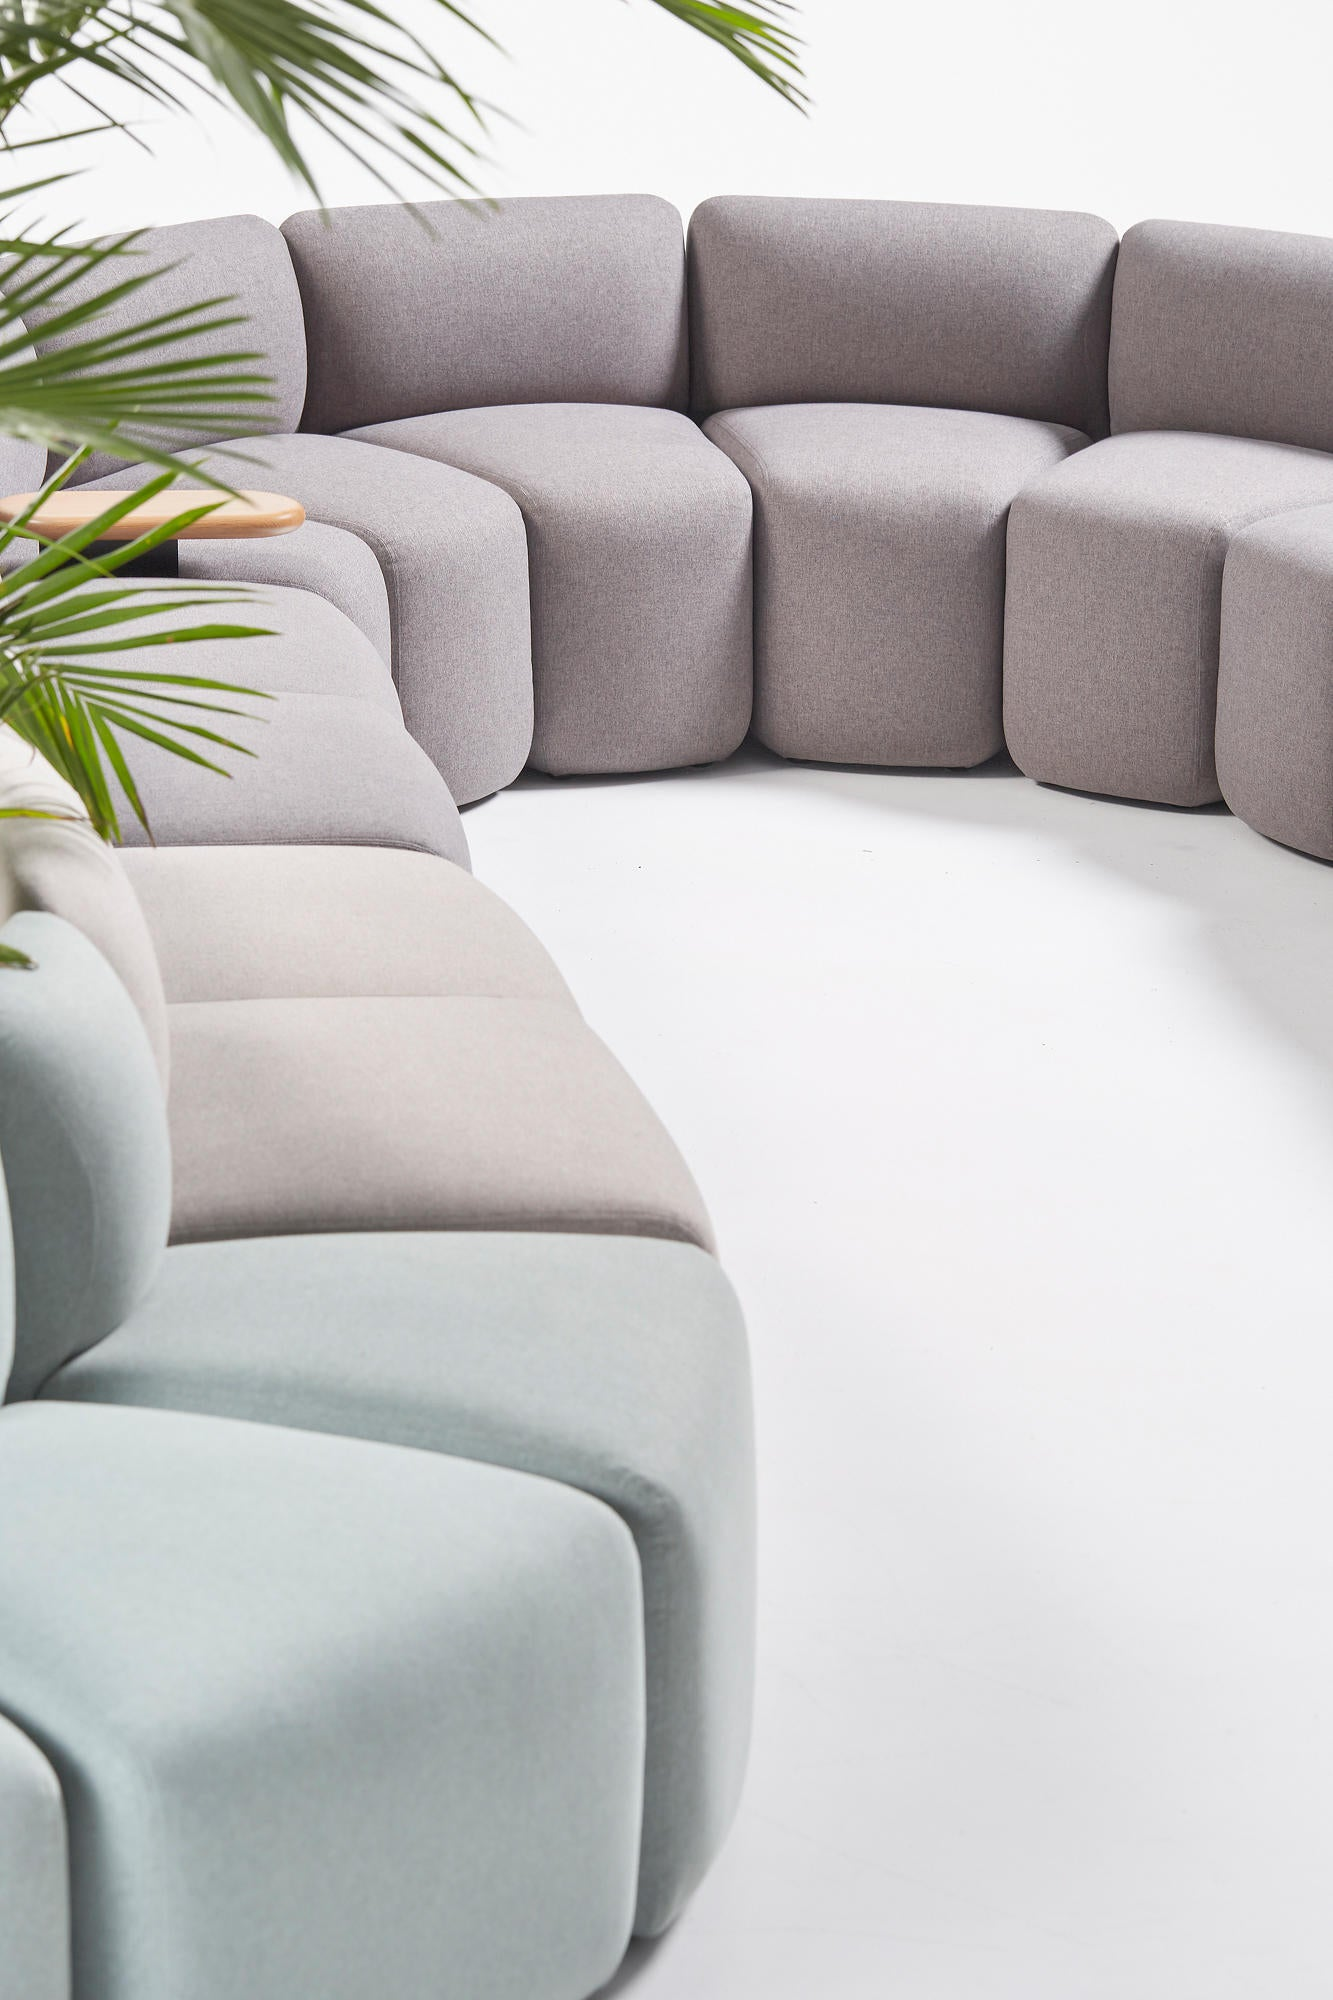 Derlot Editions Caterpillar Modular Soft Seating